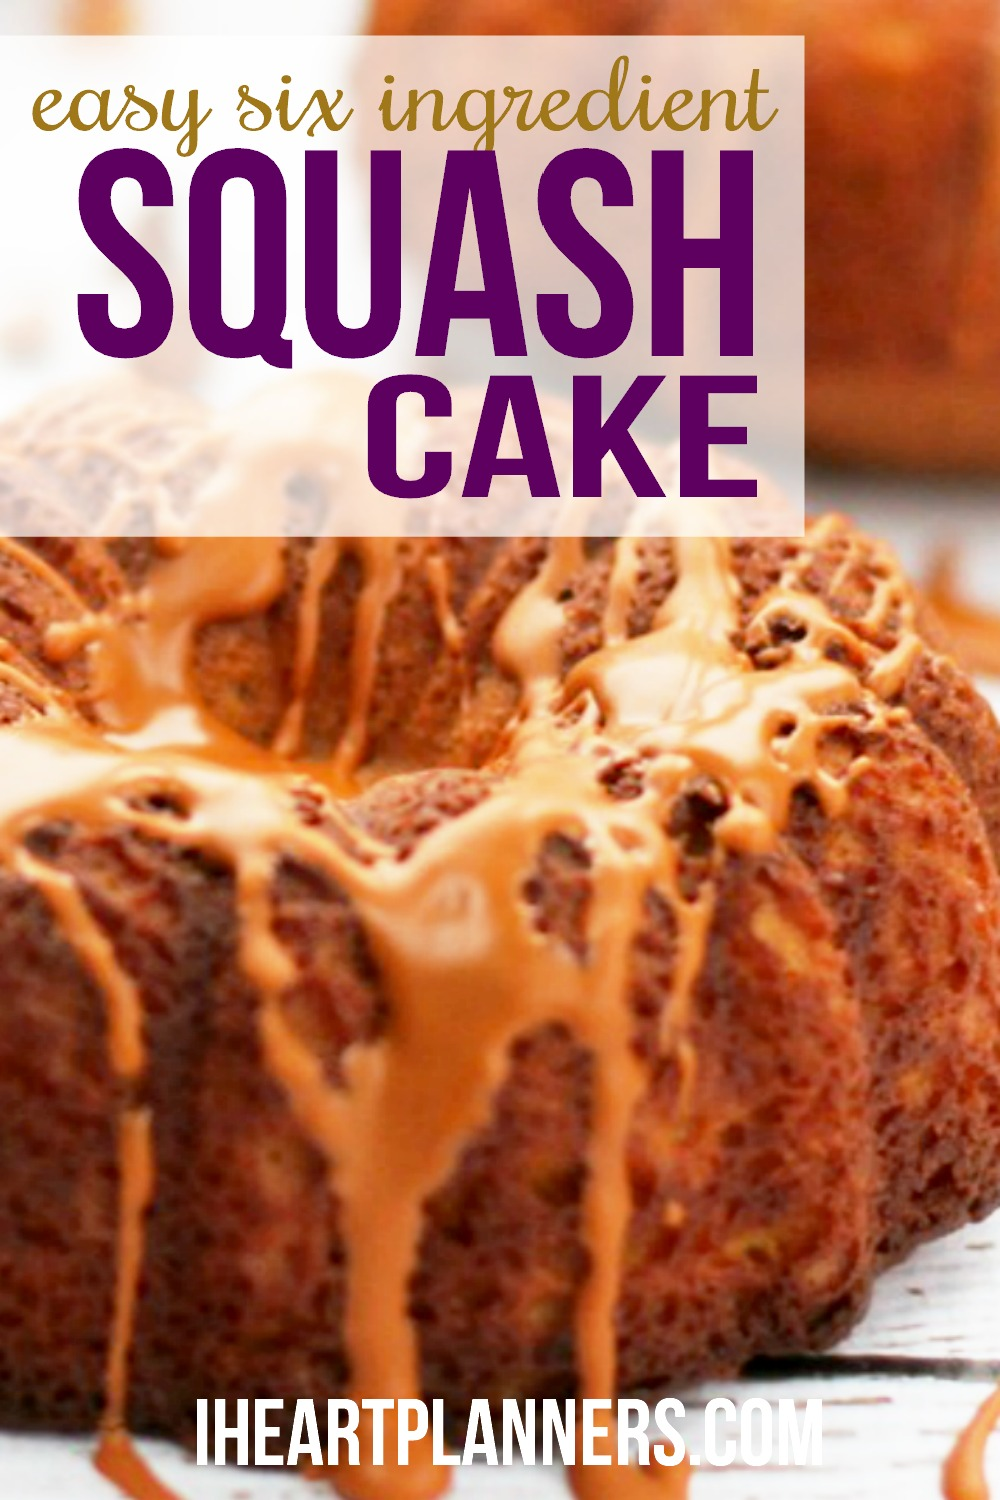 This six ingredient squash cake is super moist and yummy. If you have picky eaters, this recipe is the perfect way to serve dessert with vegetables.